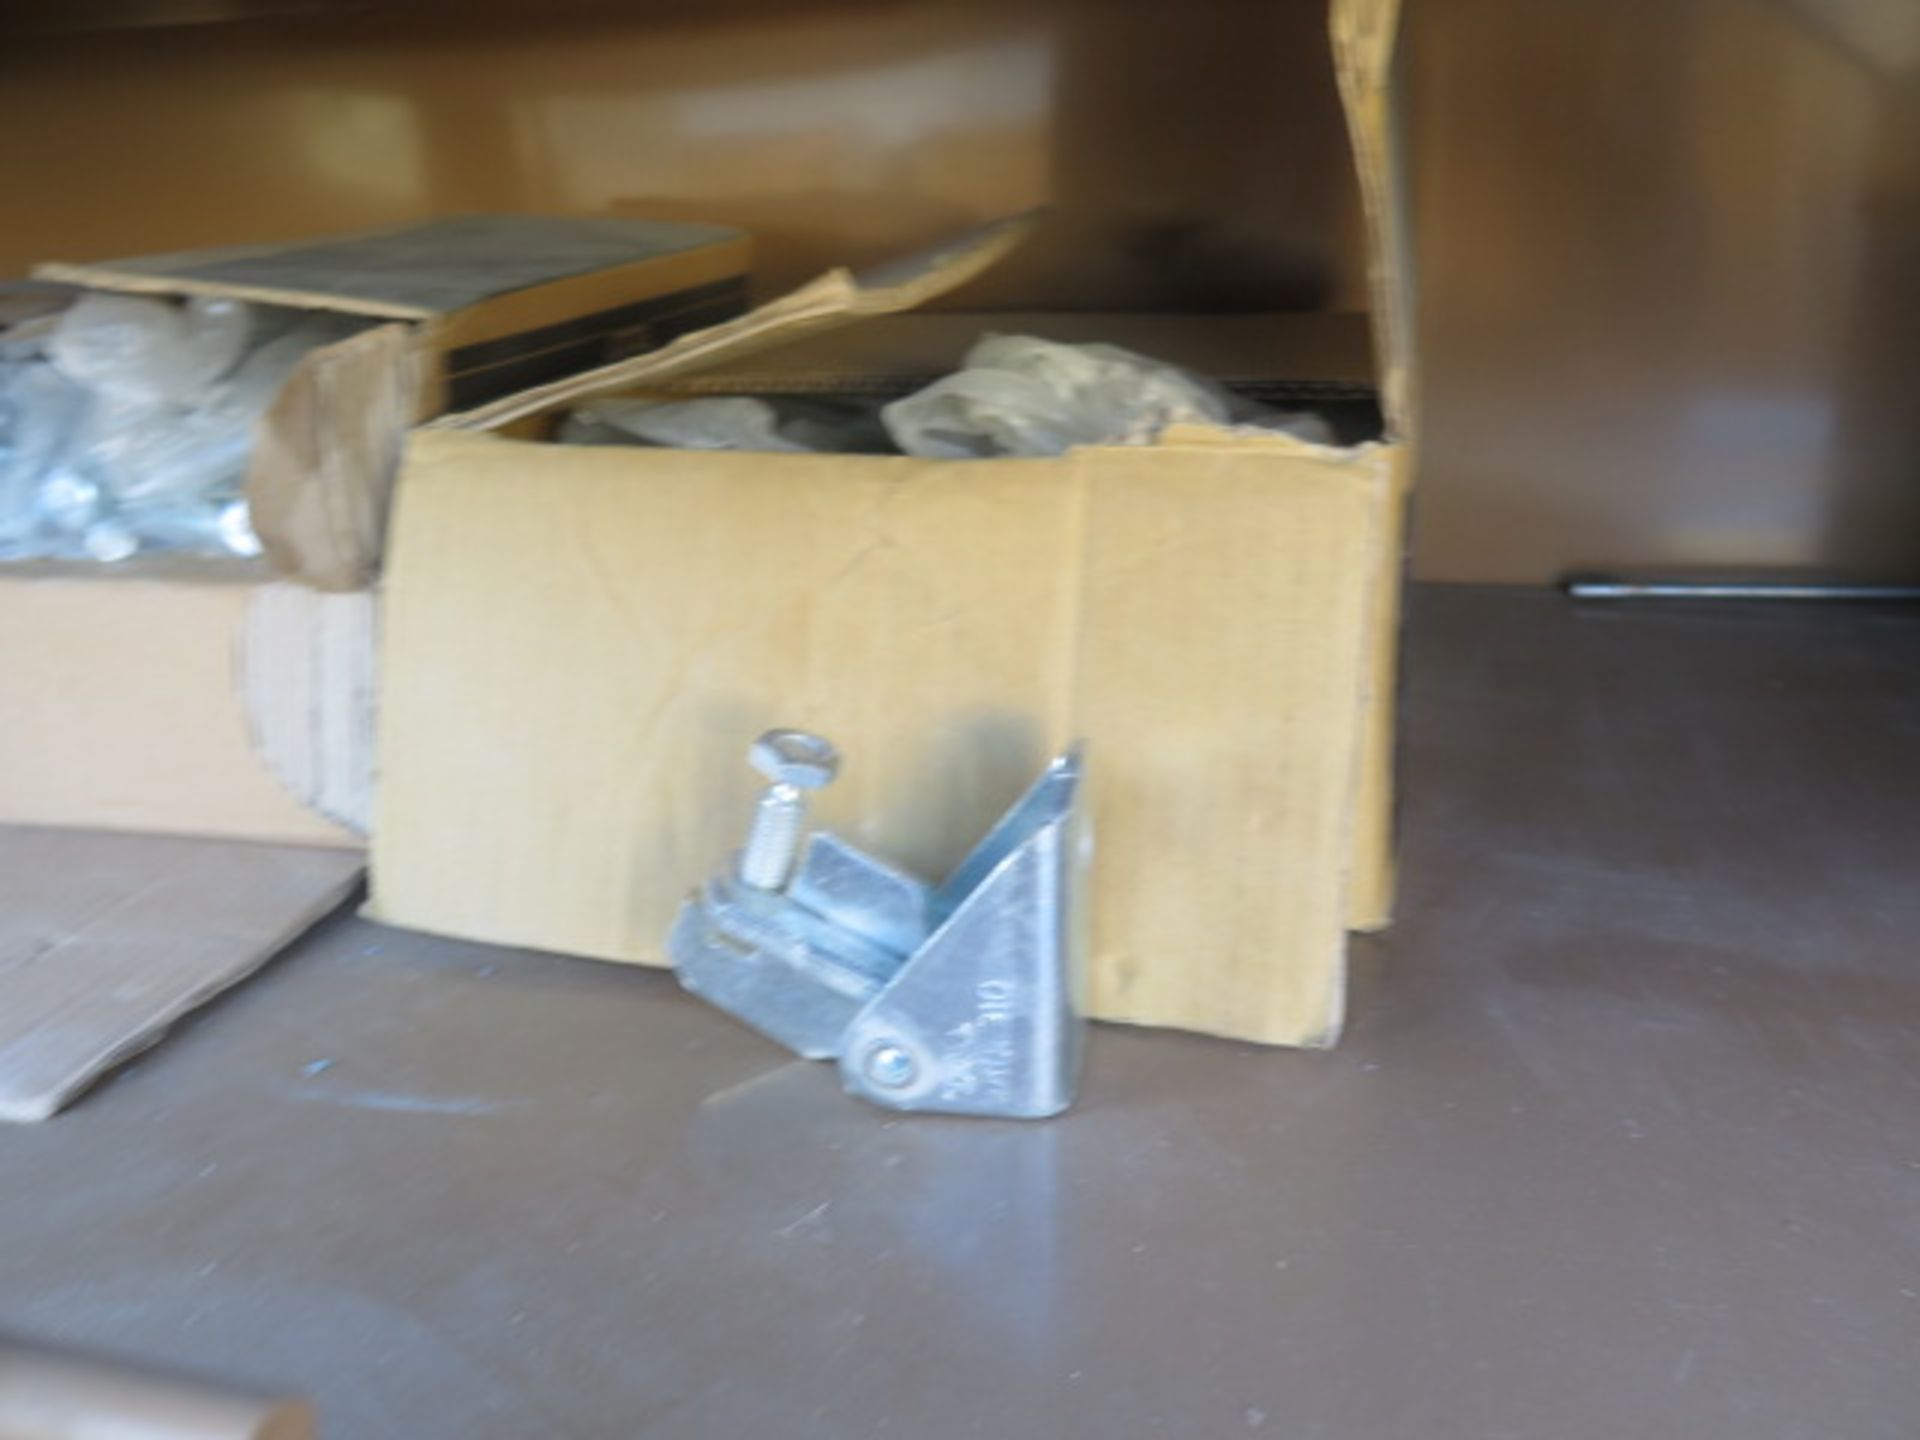 Knaack mdl. 139 Jobmaster Rolling Job Boxw/ Hardware and Supplies (SOLD AS-IS - NO WARRANTY) - Image 11 of 21